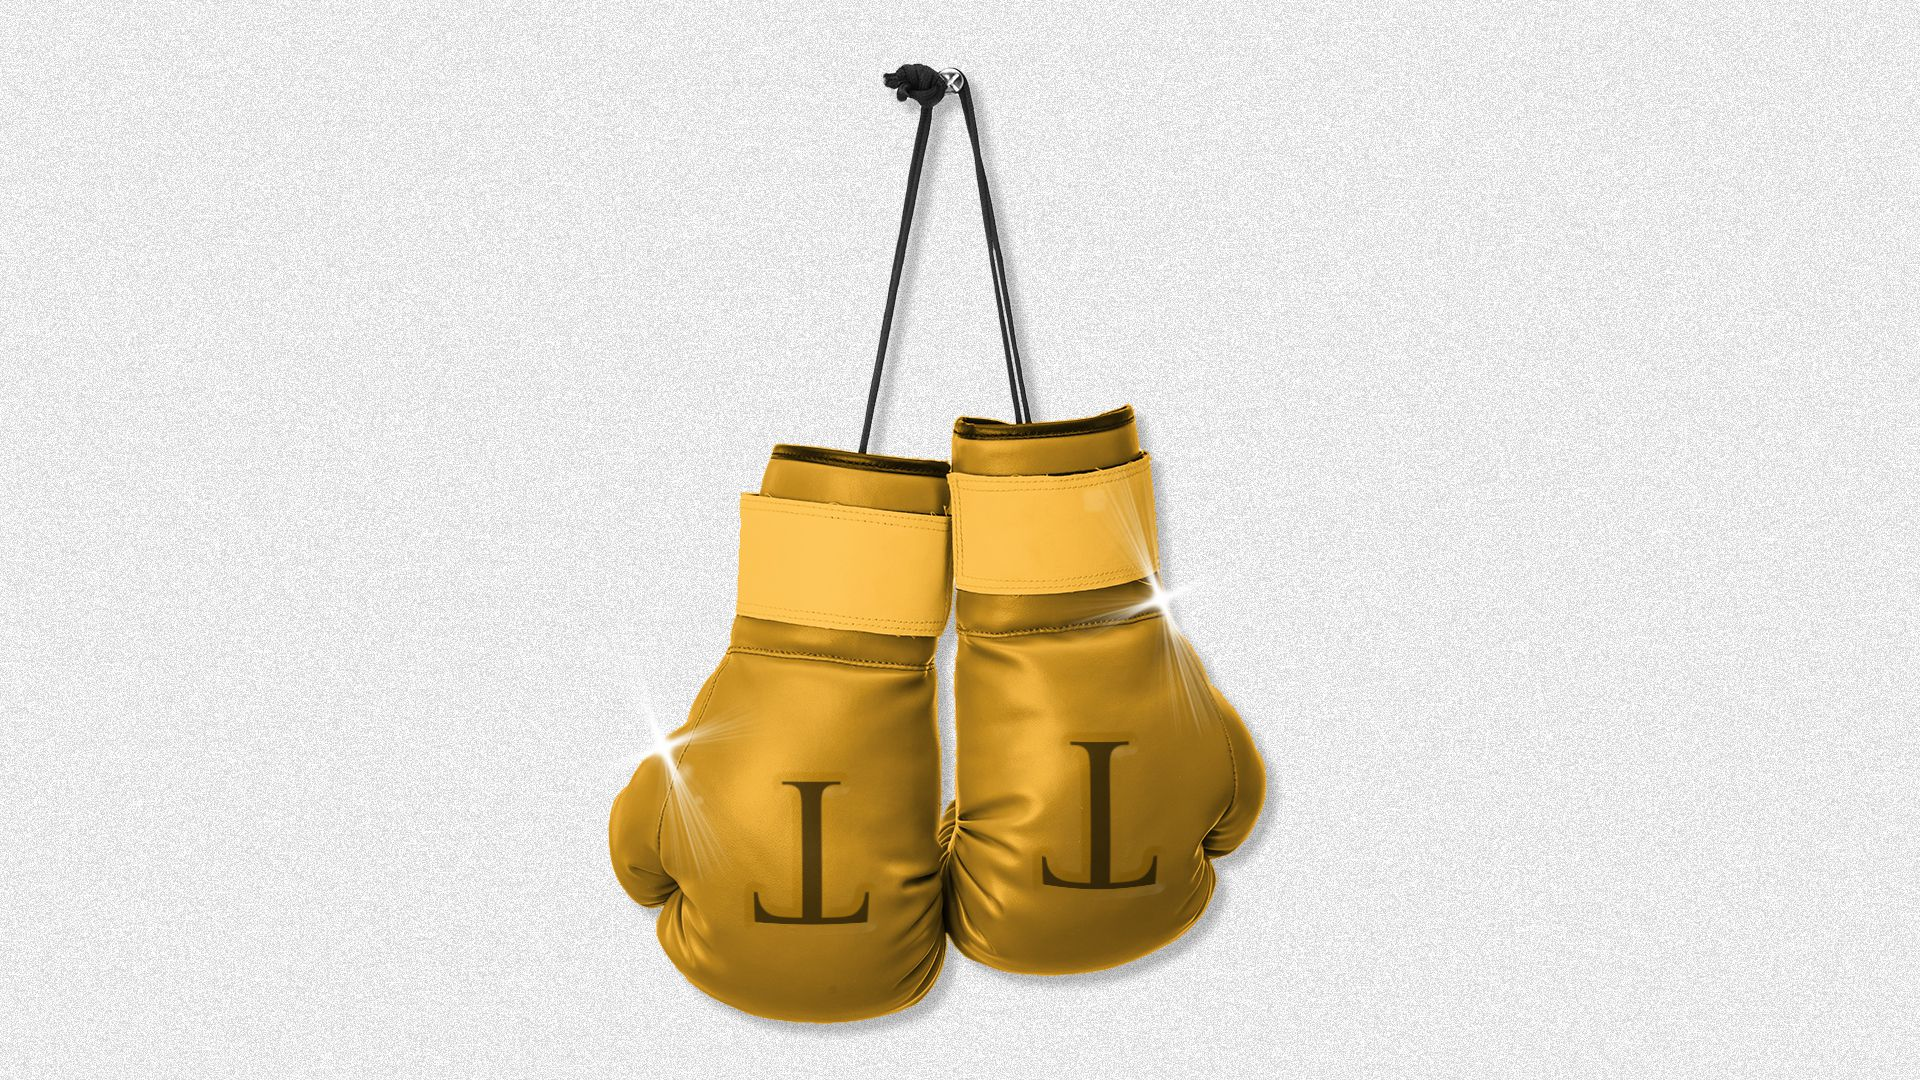 Illustration of golden boxing gloves with a T embossed on the gloves.